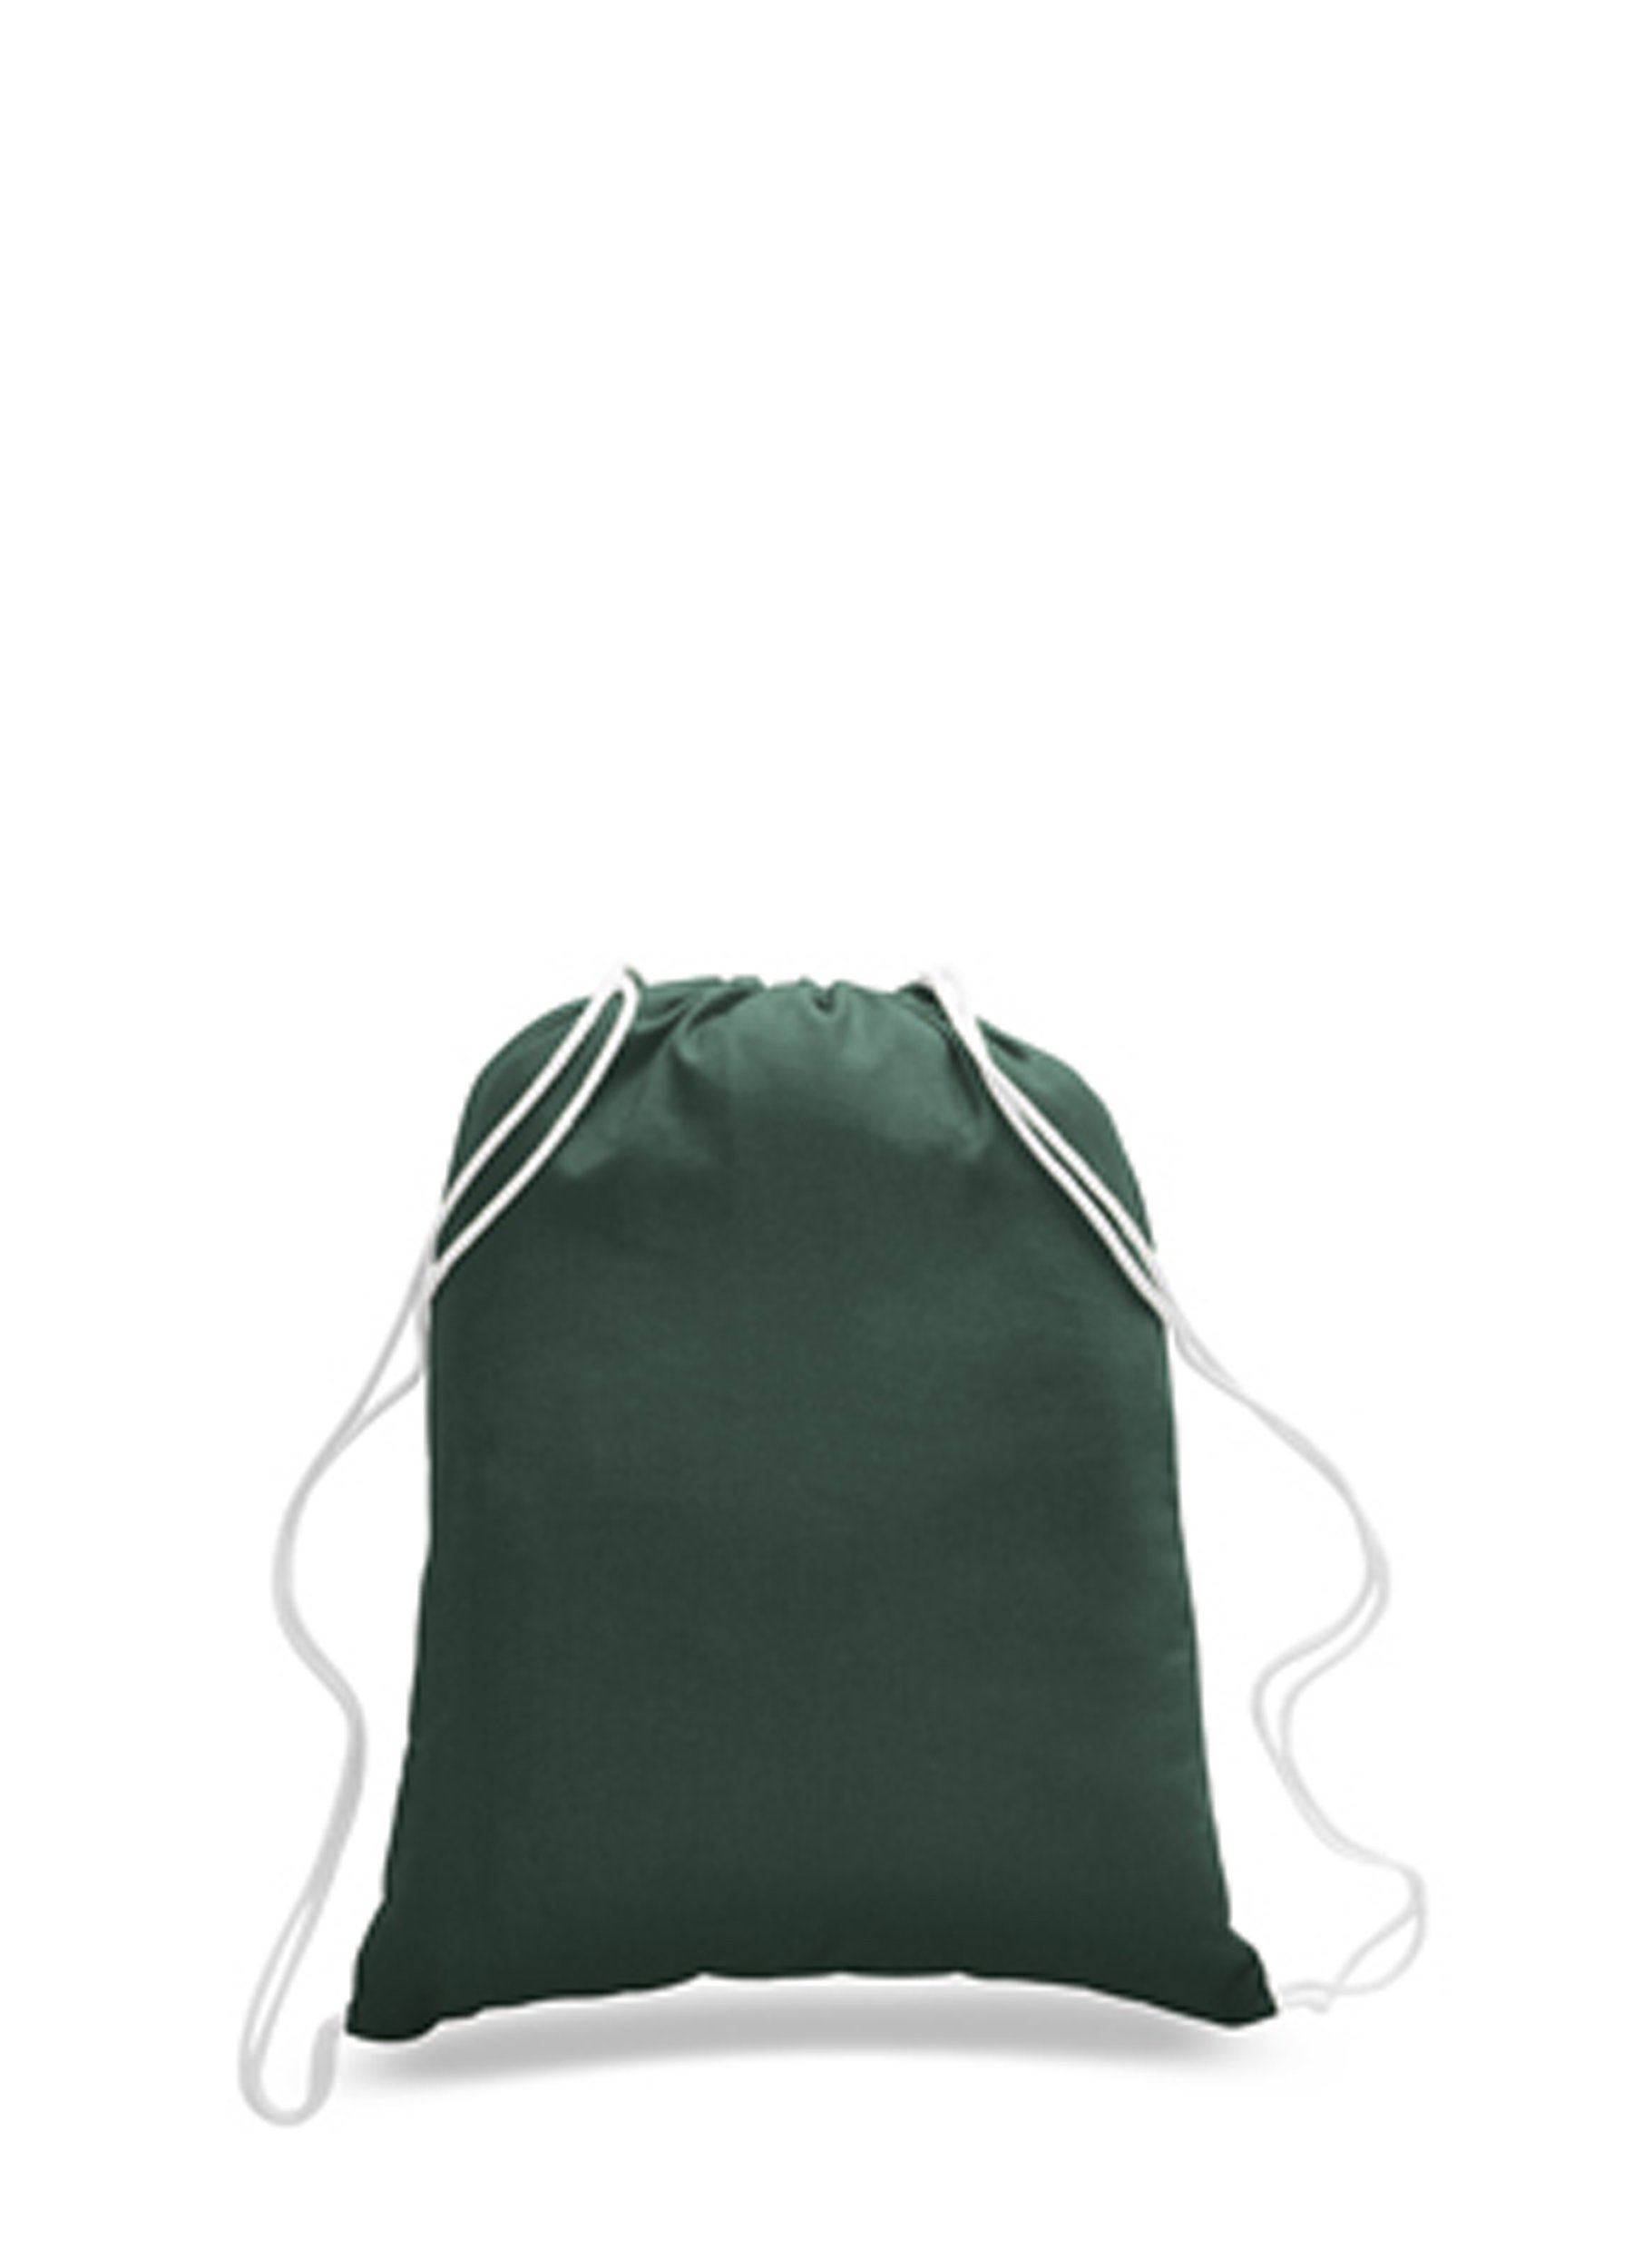 24 Pack Wholesale Apparel Bags 100% Cotton Reusable Eco Friendly Gym Tote Bags Drawstring Bags in Bulk Promotional Give away Quality Drawstring Backpack Bags Cinch Bags Sack Packs (Forest Green)